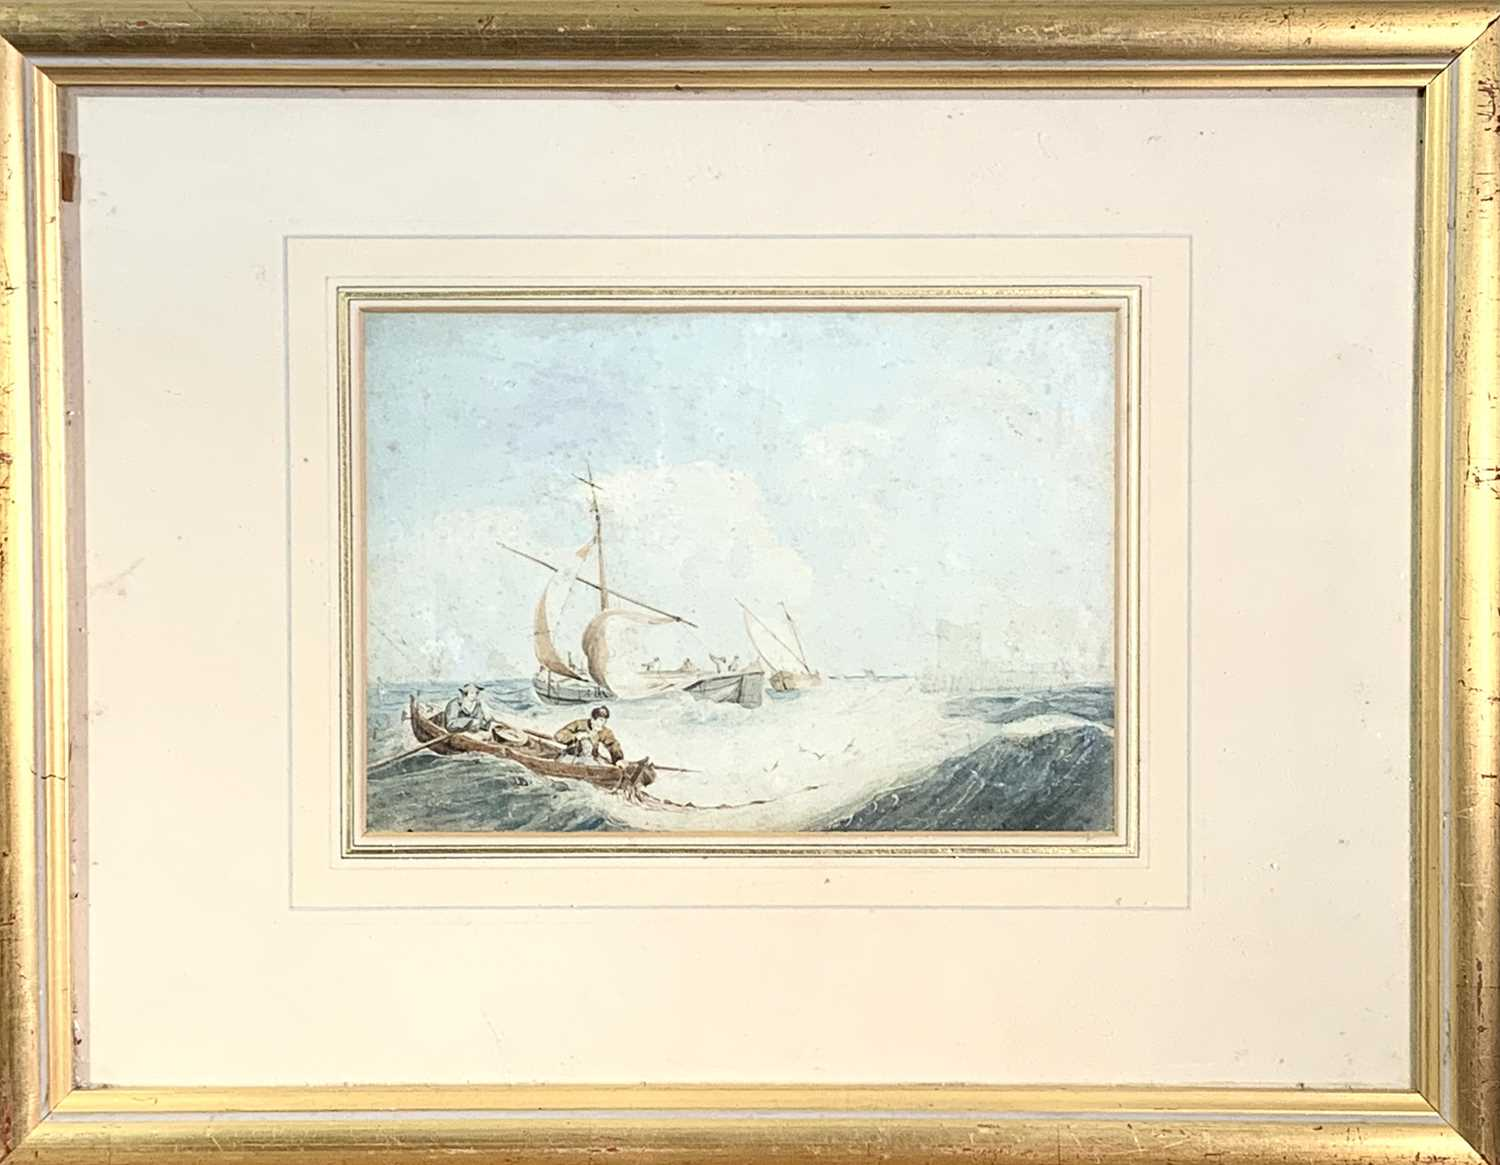 Attributed to Samuel Owen Marine Watercolour Together with a watercolour of a lighthouse by George H - Image 5 of 6